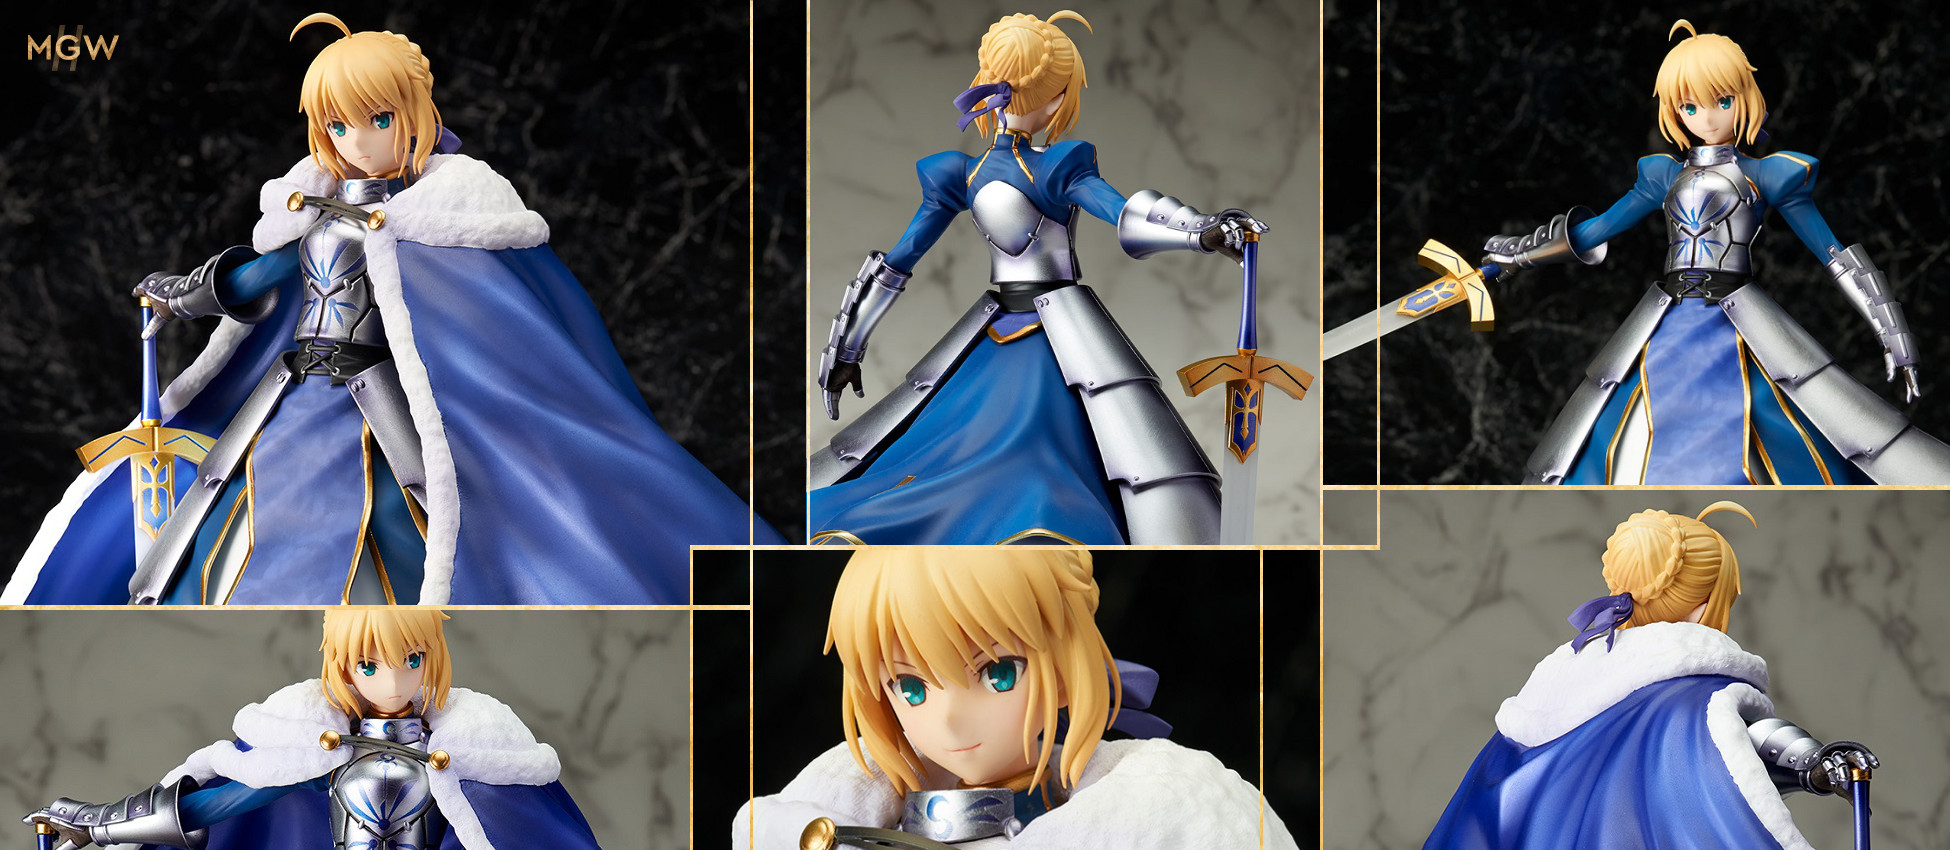 Saber Altria Pendragon DX Ver by STRONGER from Fate Grand Order 2 MyGrailWatch Anime Figure Guide